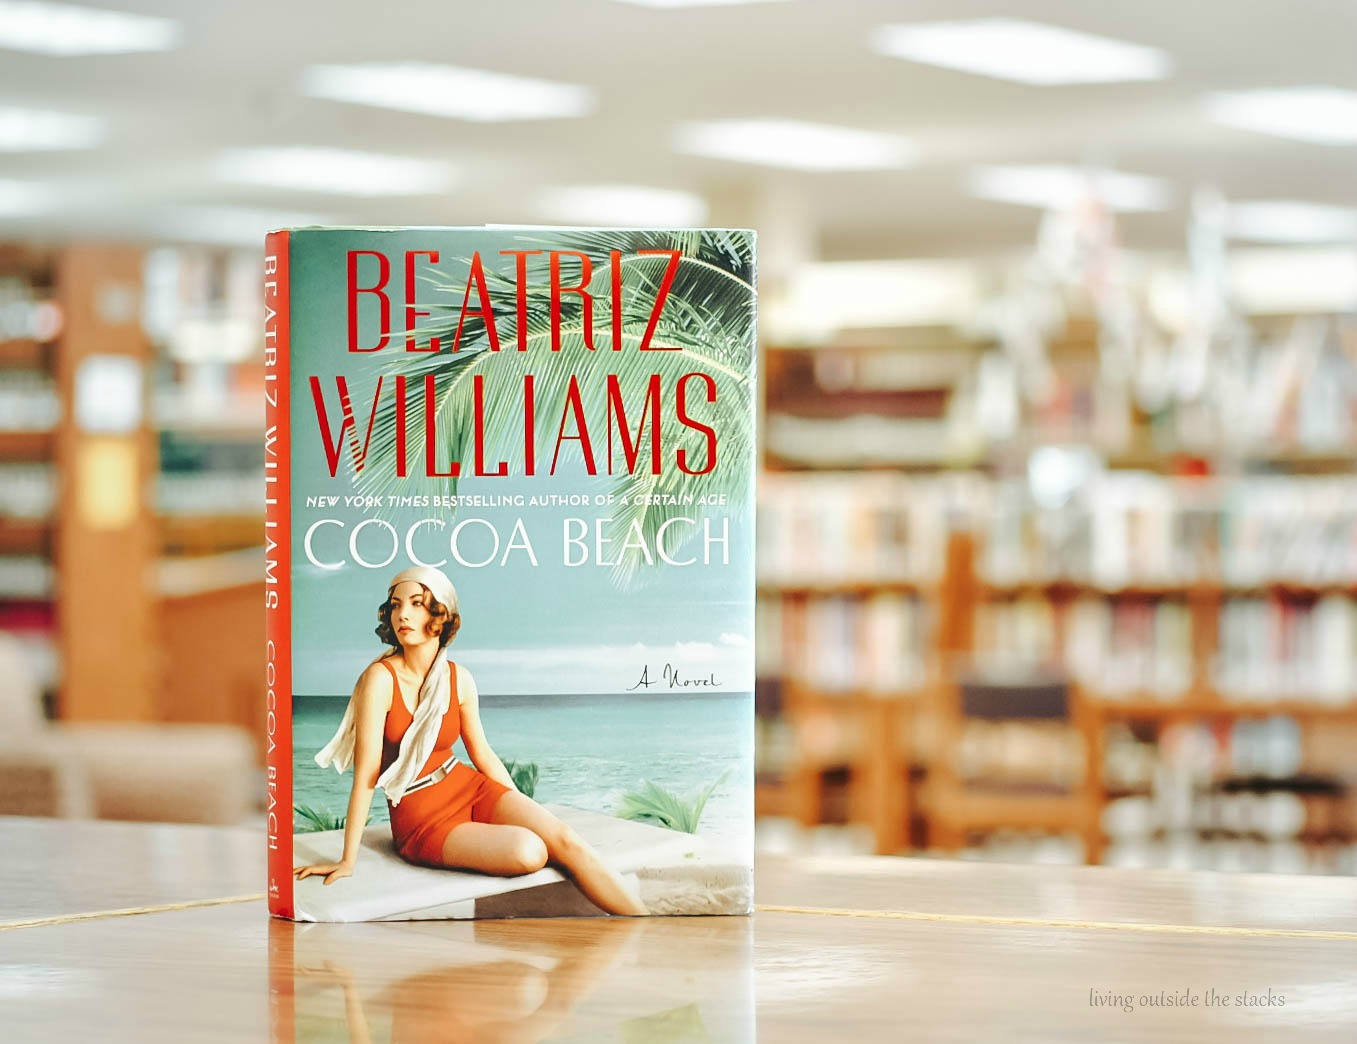 Book Review Cocoa Beach by Beatriz Williams {living outside the stacks}